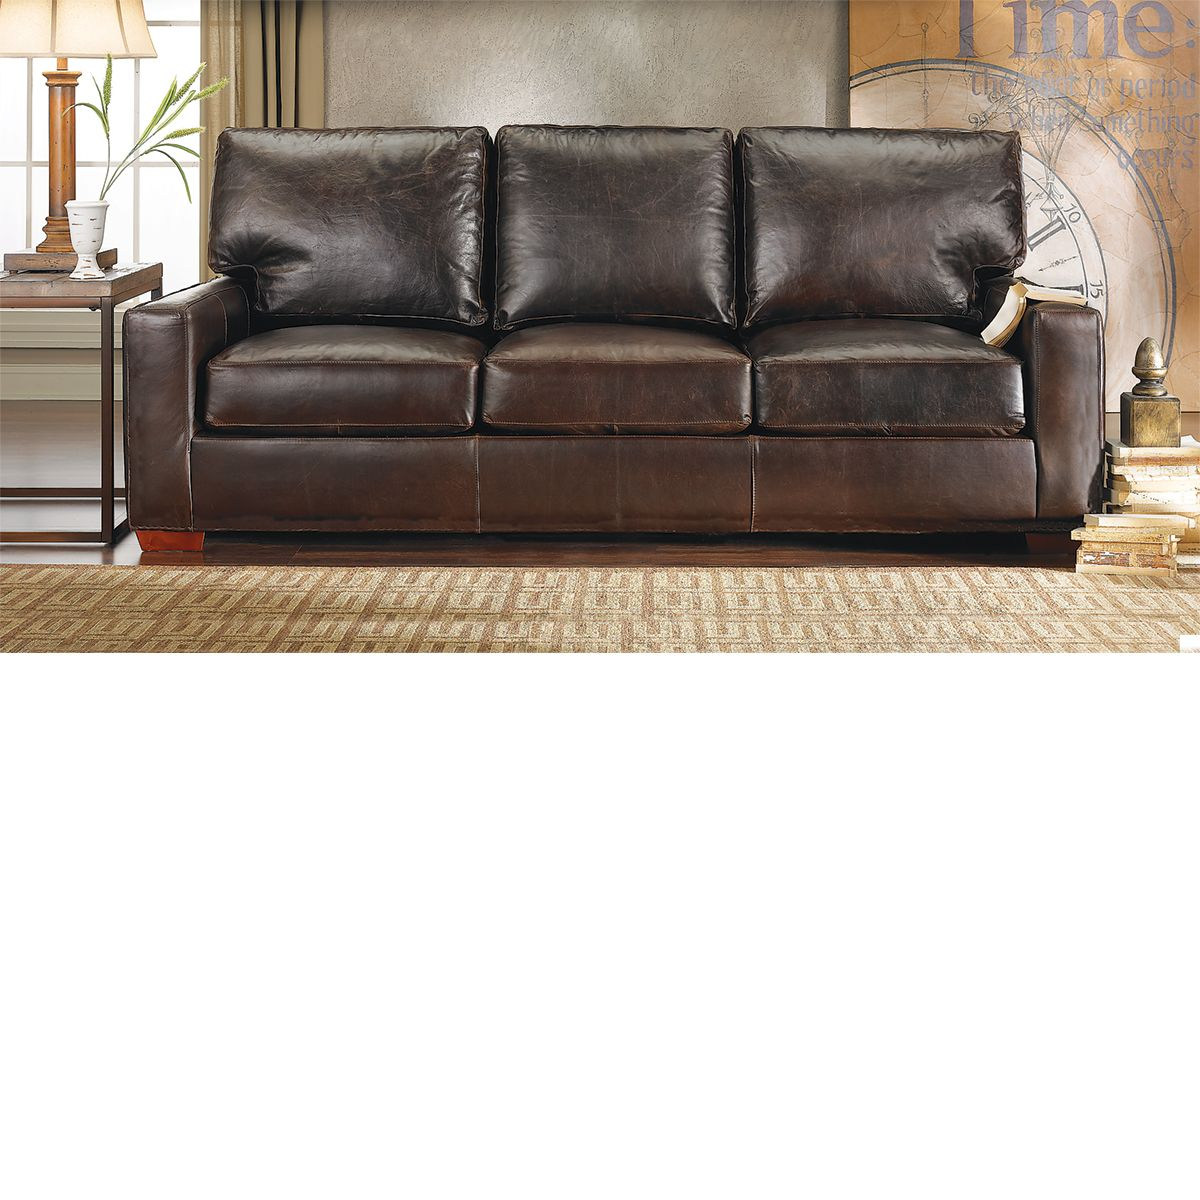 The Dump Furniture Brompton Leather Sofa